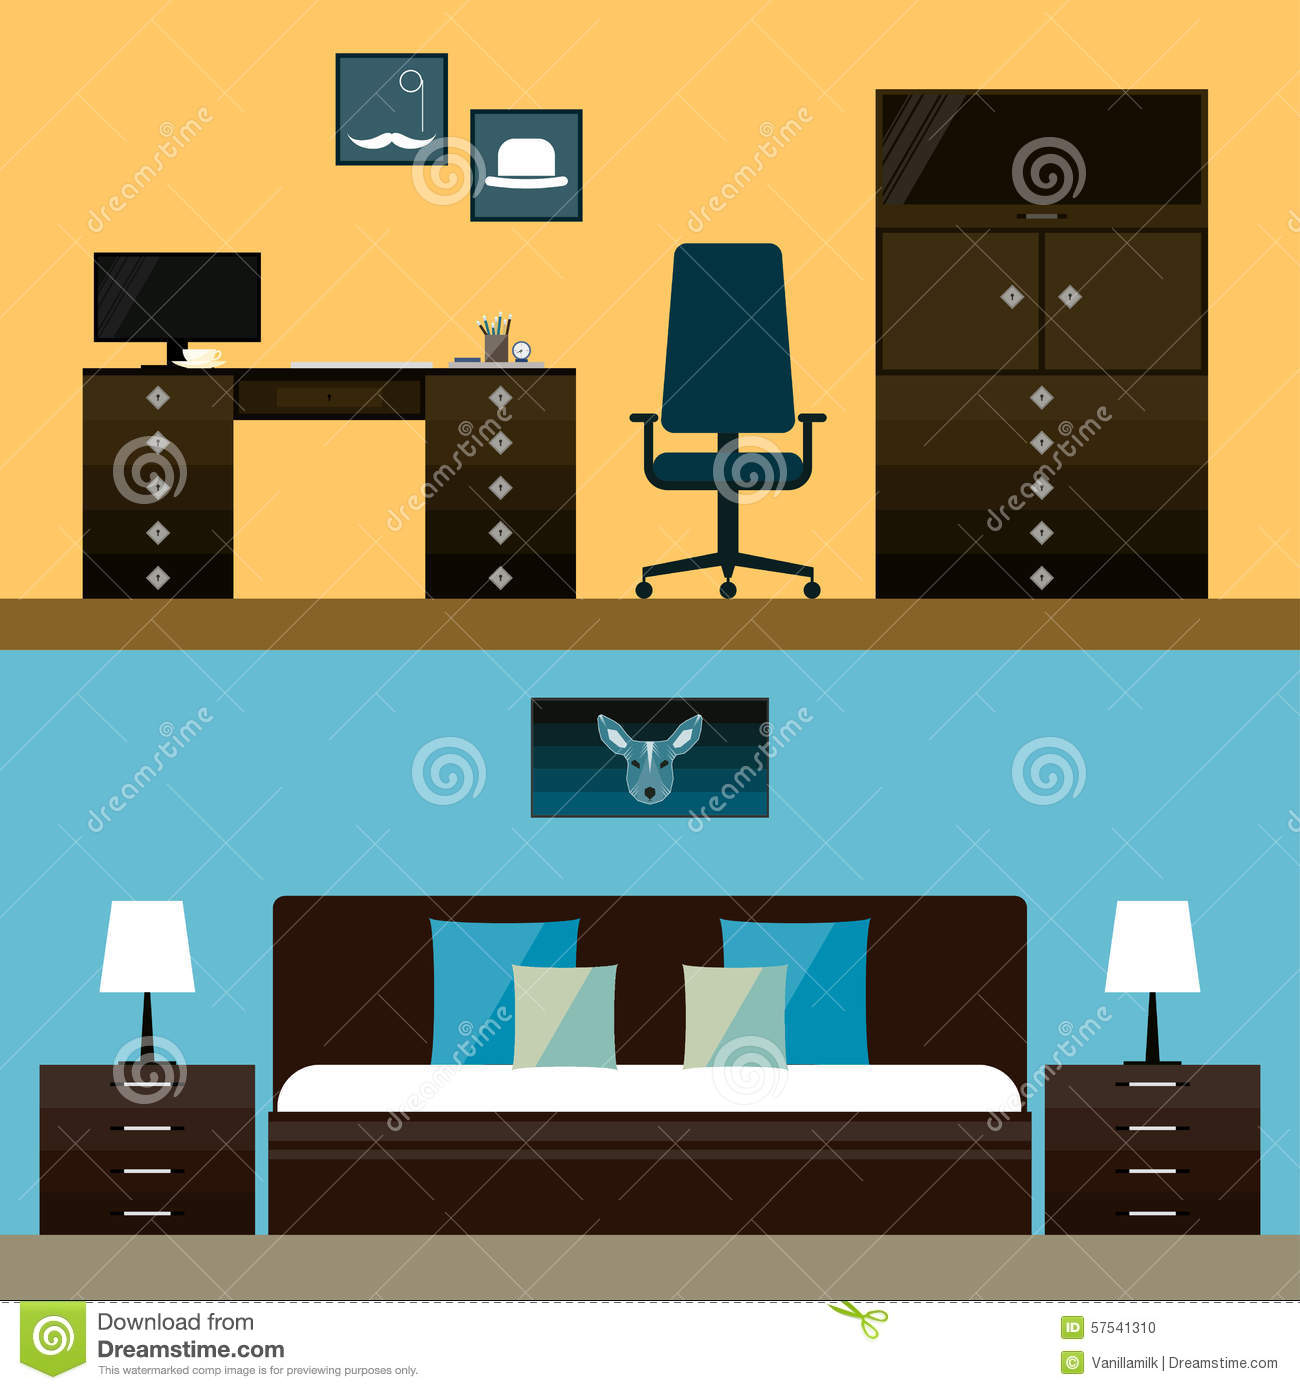 Download Simple Interior Illustration In Trendy Flat Style With Mens Room And Bedroom On